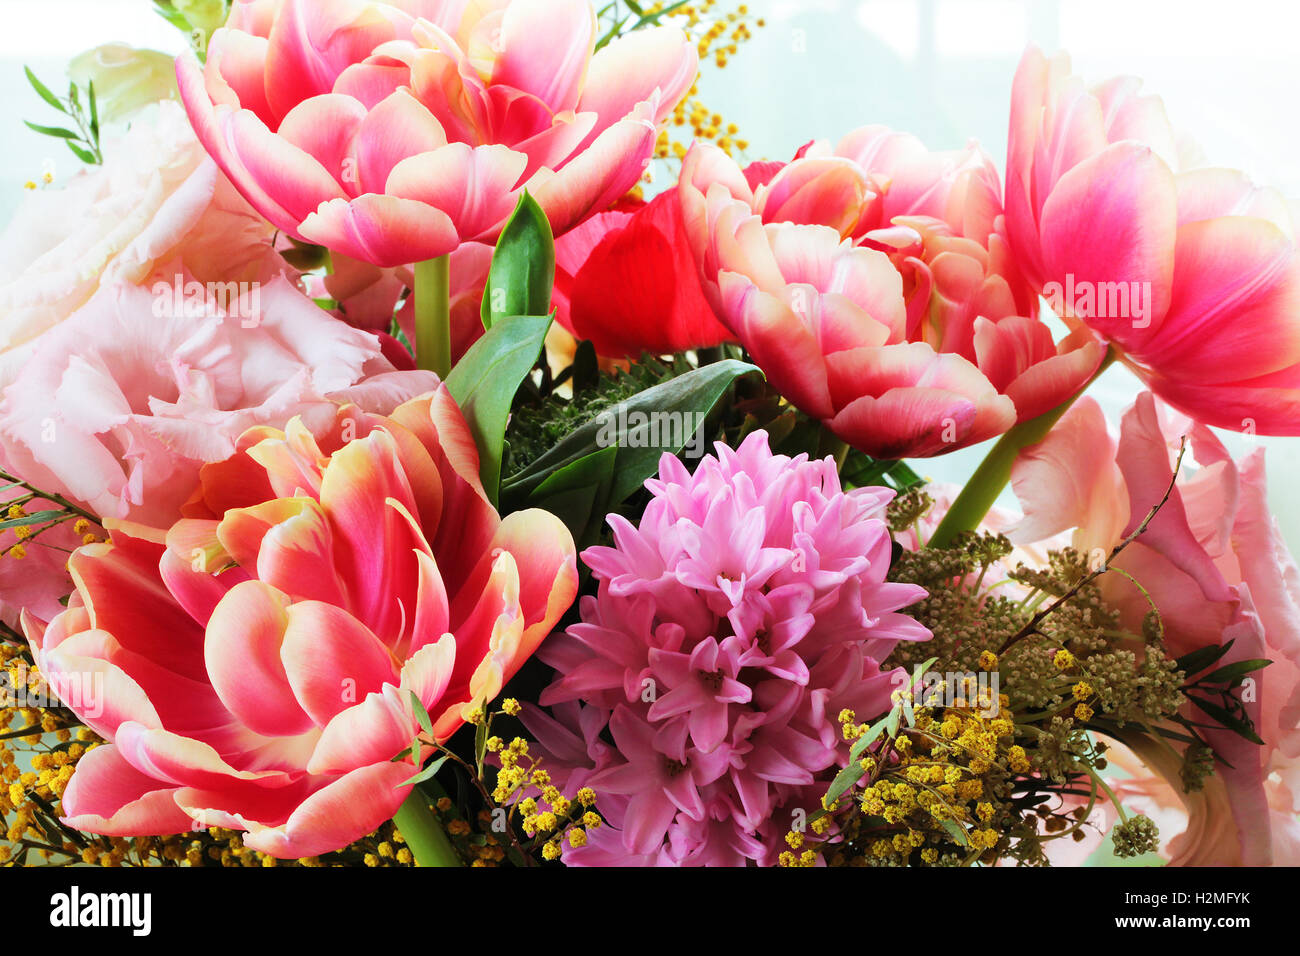 Bouquet of different flowers including tulips and mimosa stock photo bouquet of different flowers including tulips and mimosa izmirmasajfo Gallery